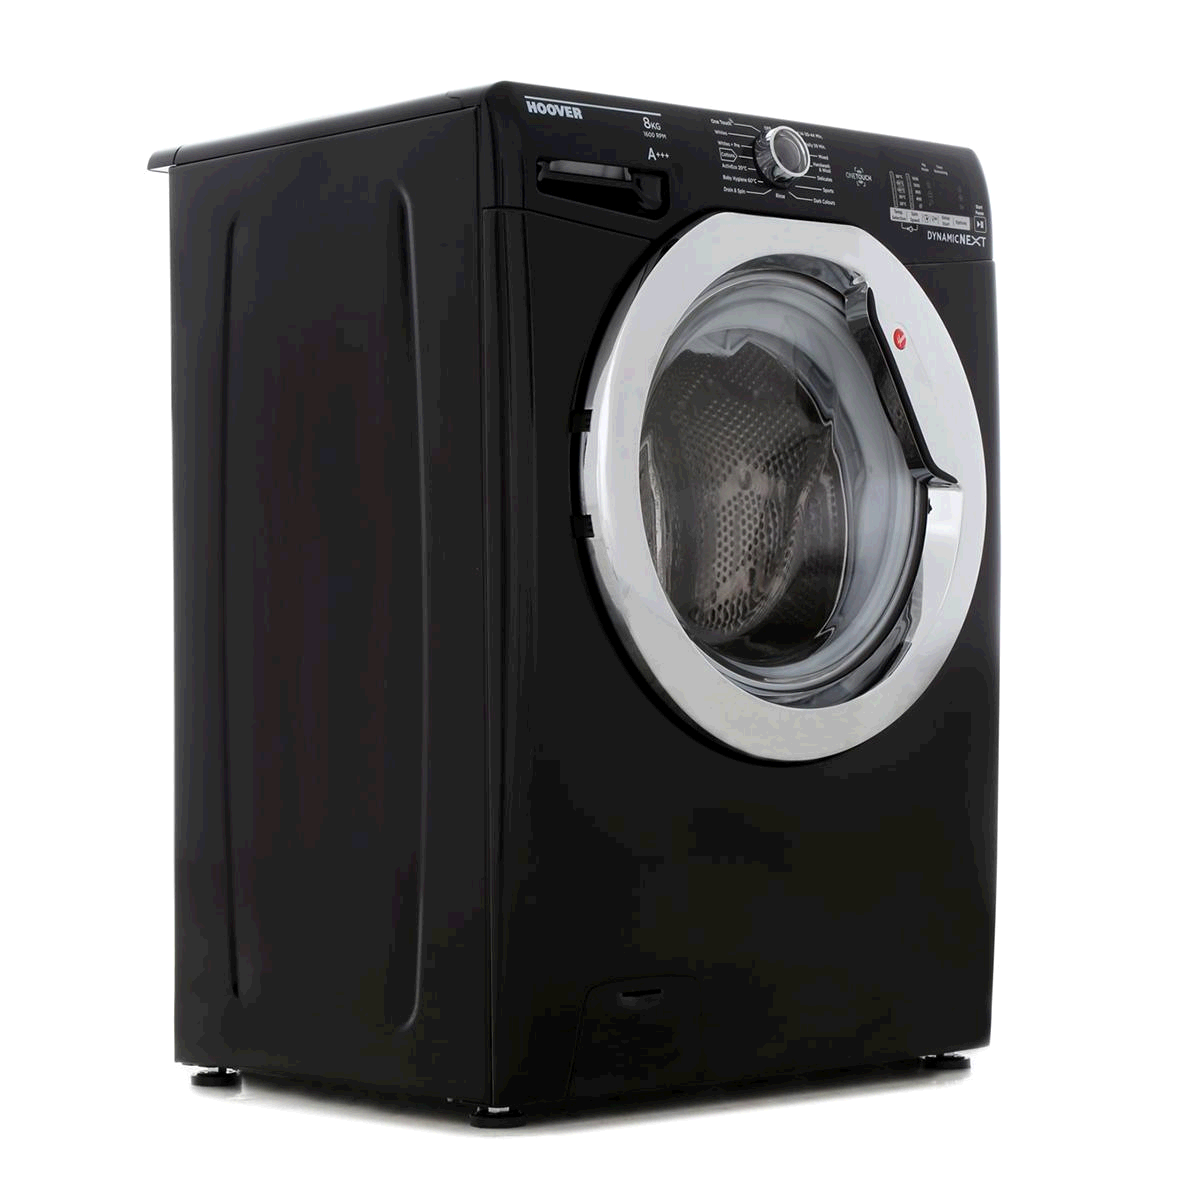 Hoover Washing Machine 8Kg 1600 Spin Black with Chrome door A+++ Touch Display 14 minute quick wash